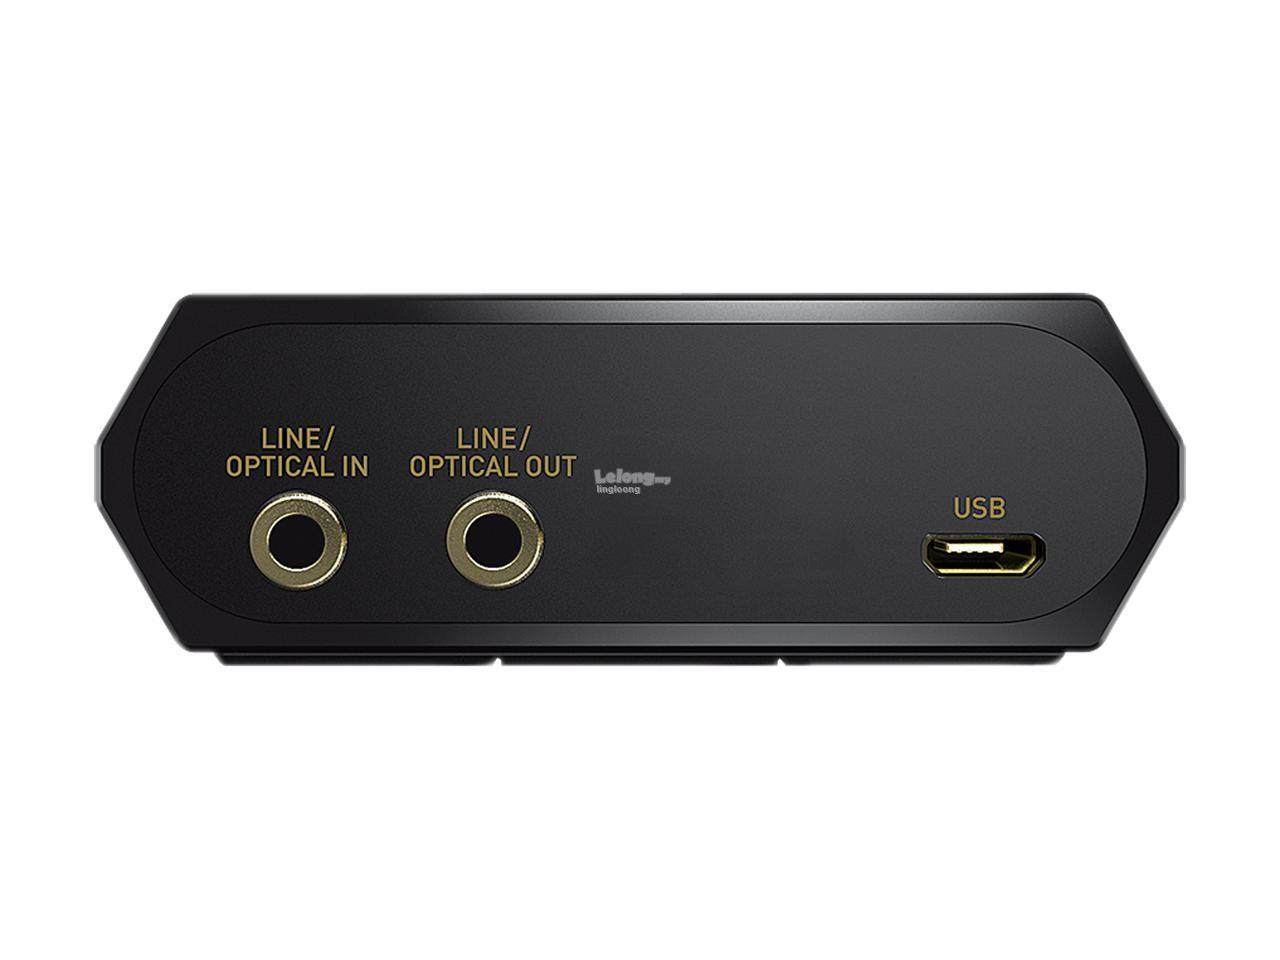 # CREATIVE Sound BlasterX G6 7.1 HD External Sound Card #